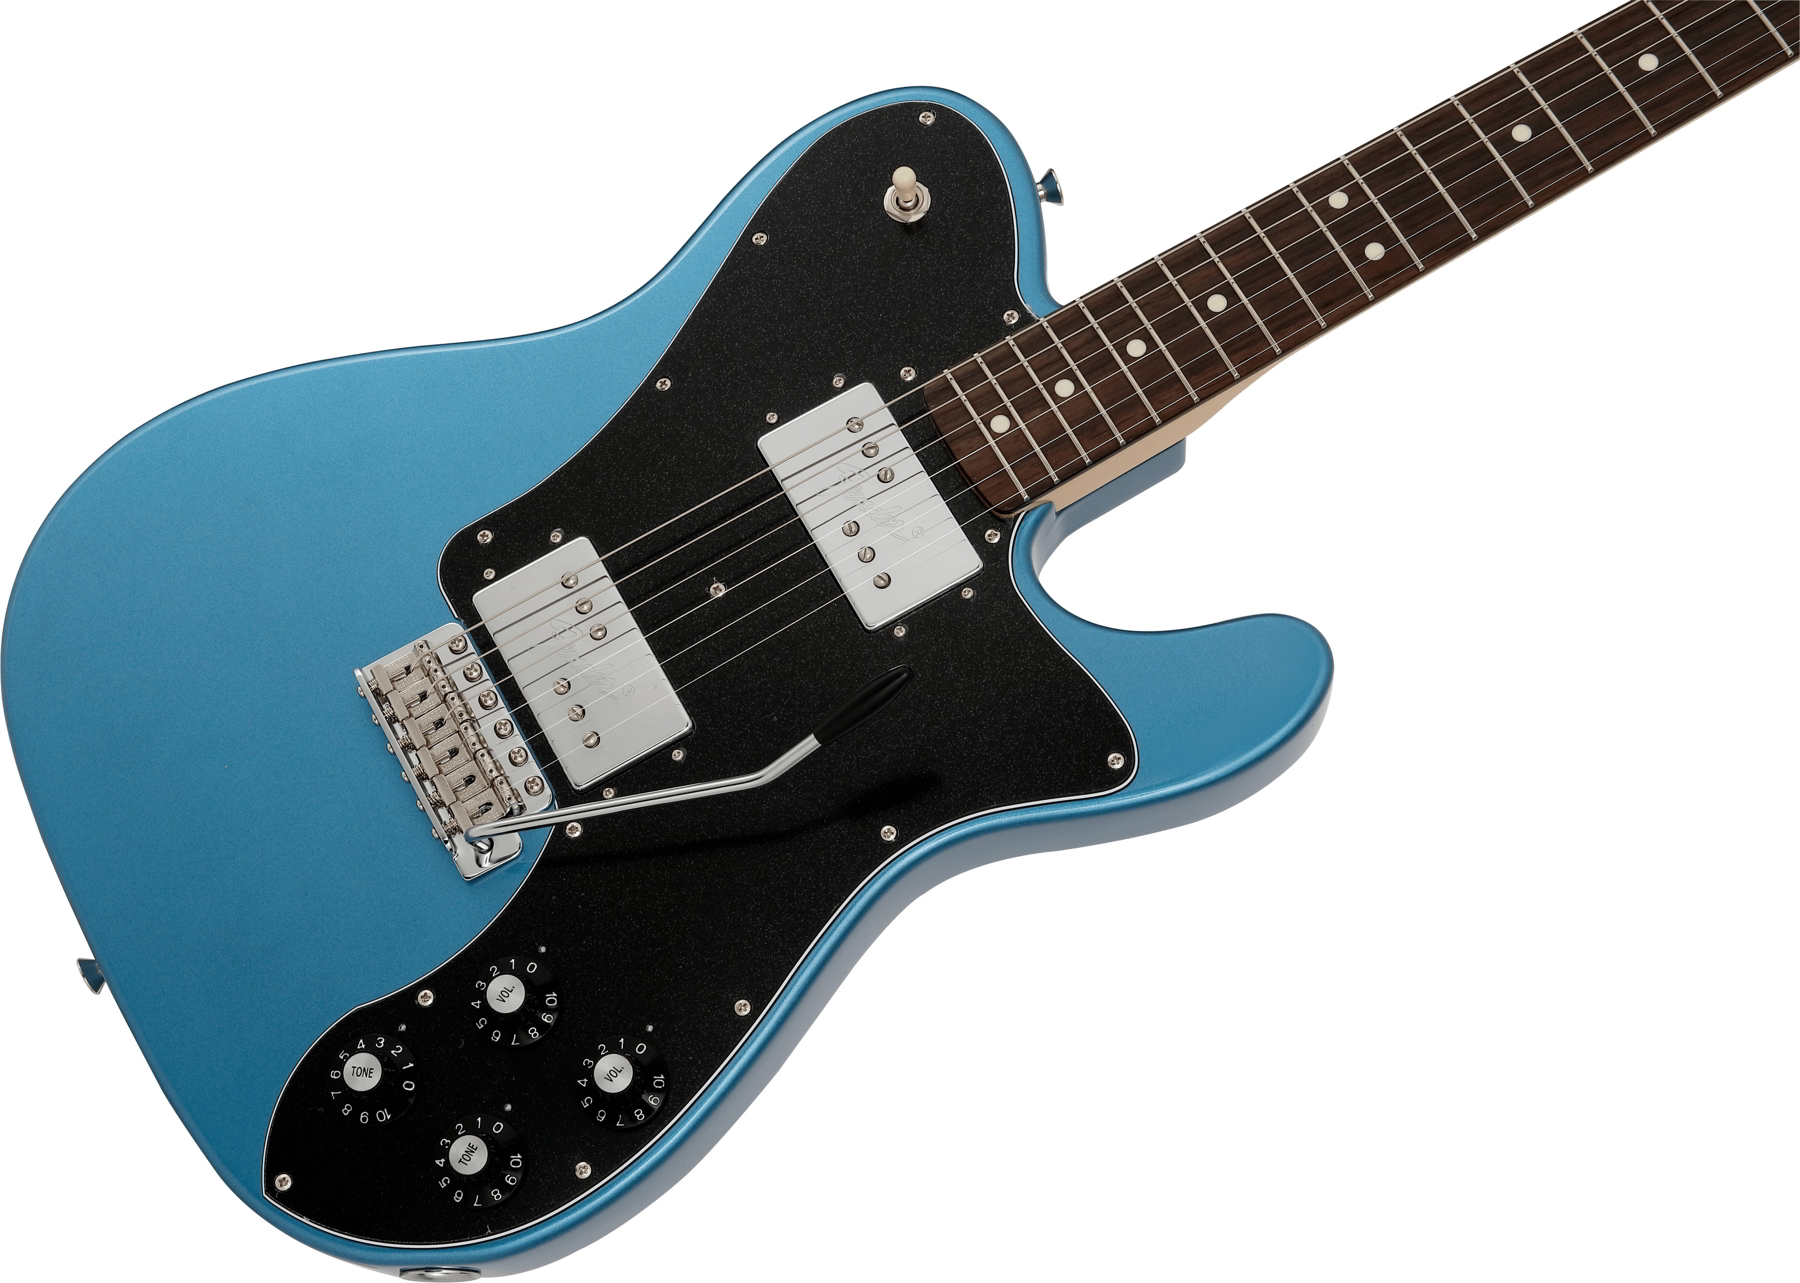 Made in Japan Limited 70s Telecaster Deluxe, with Tremolo Lake Placid Blue追加画像